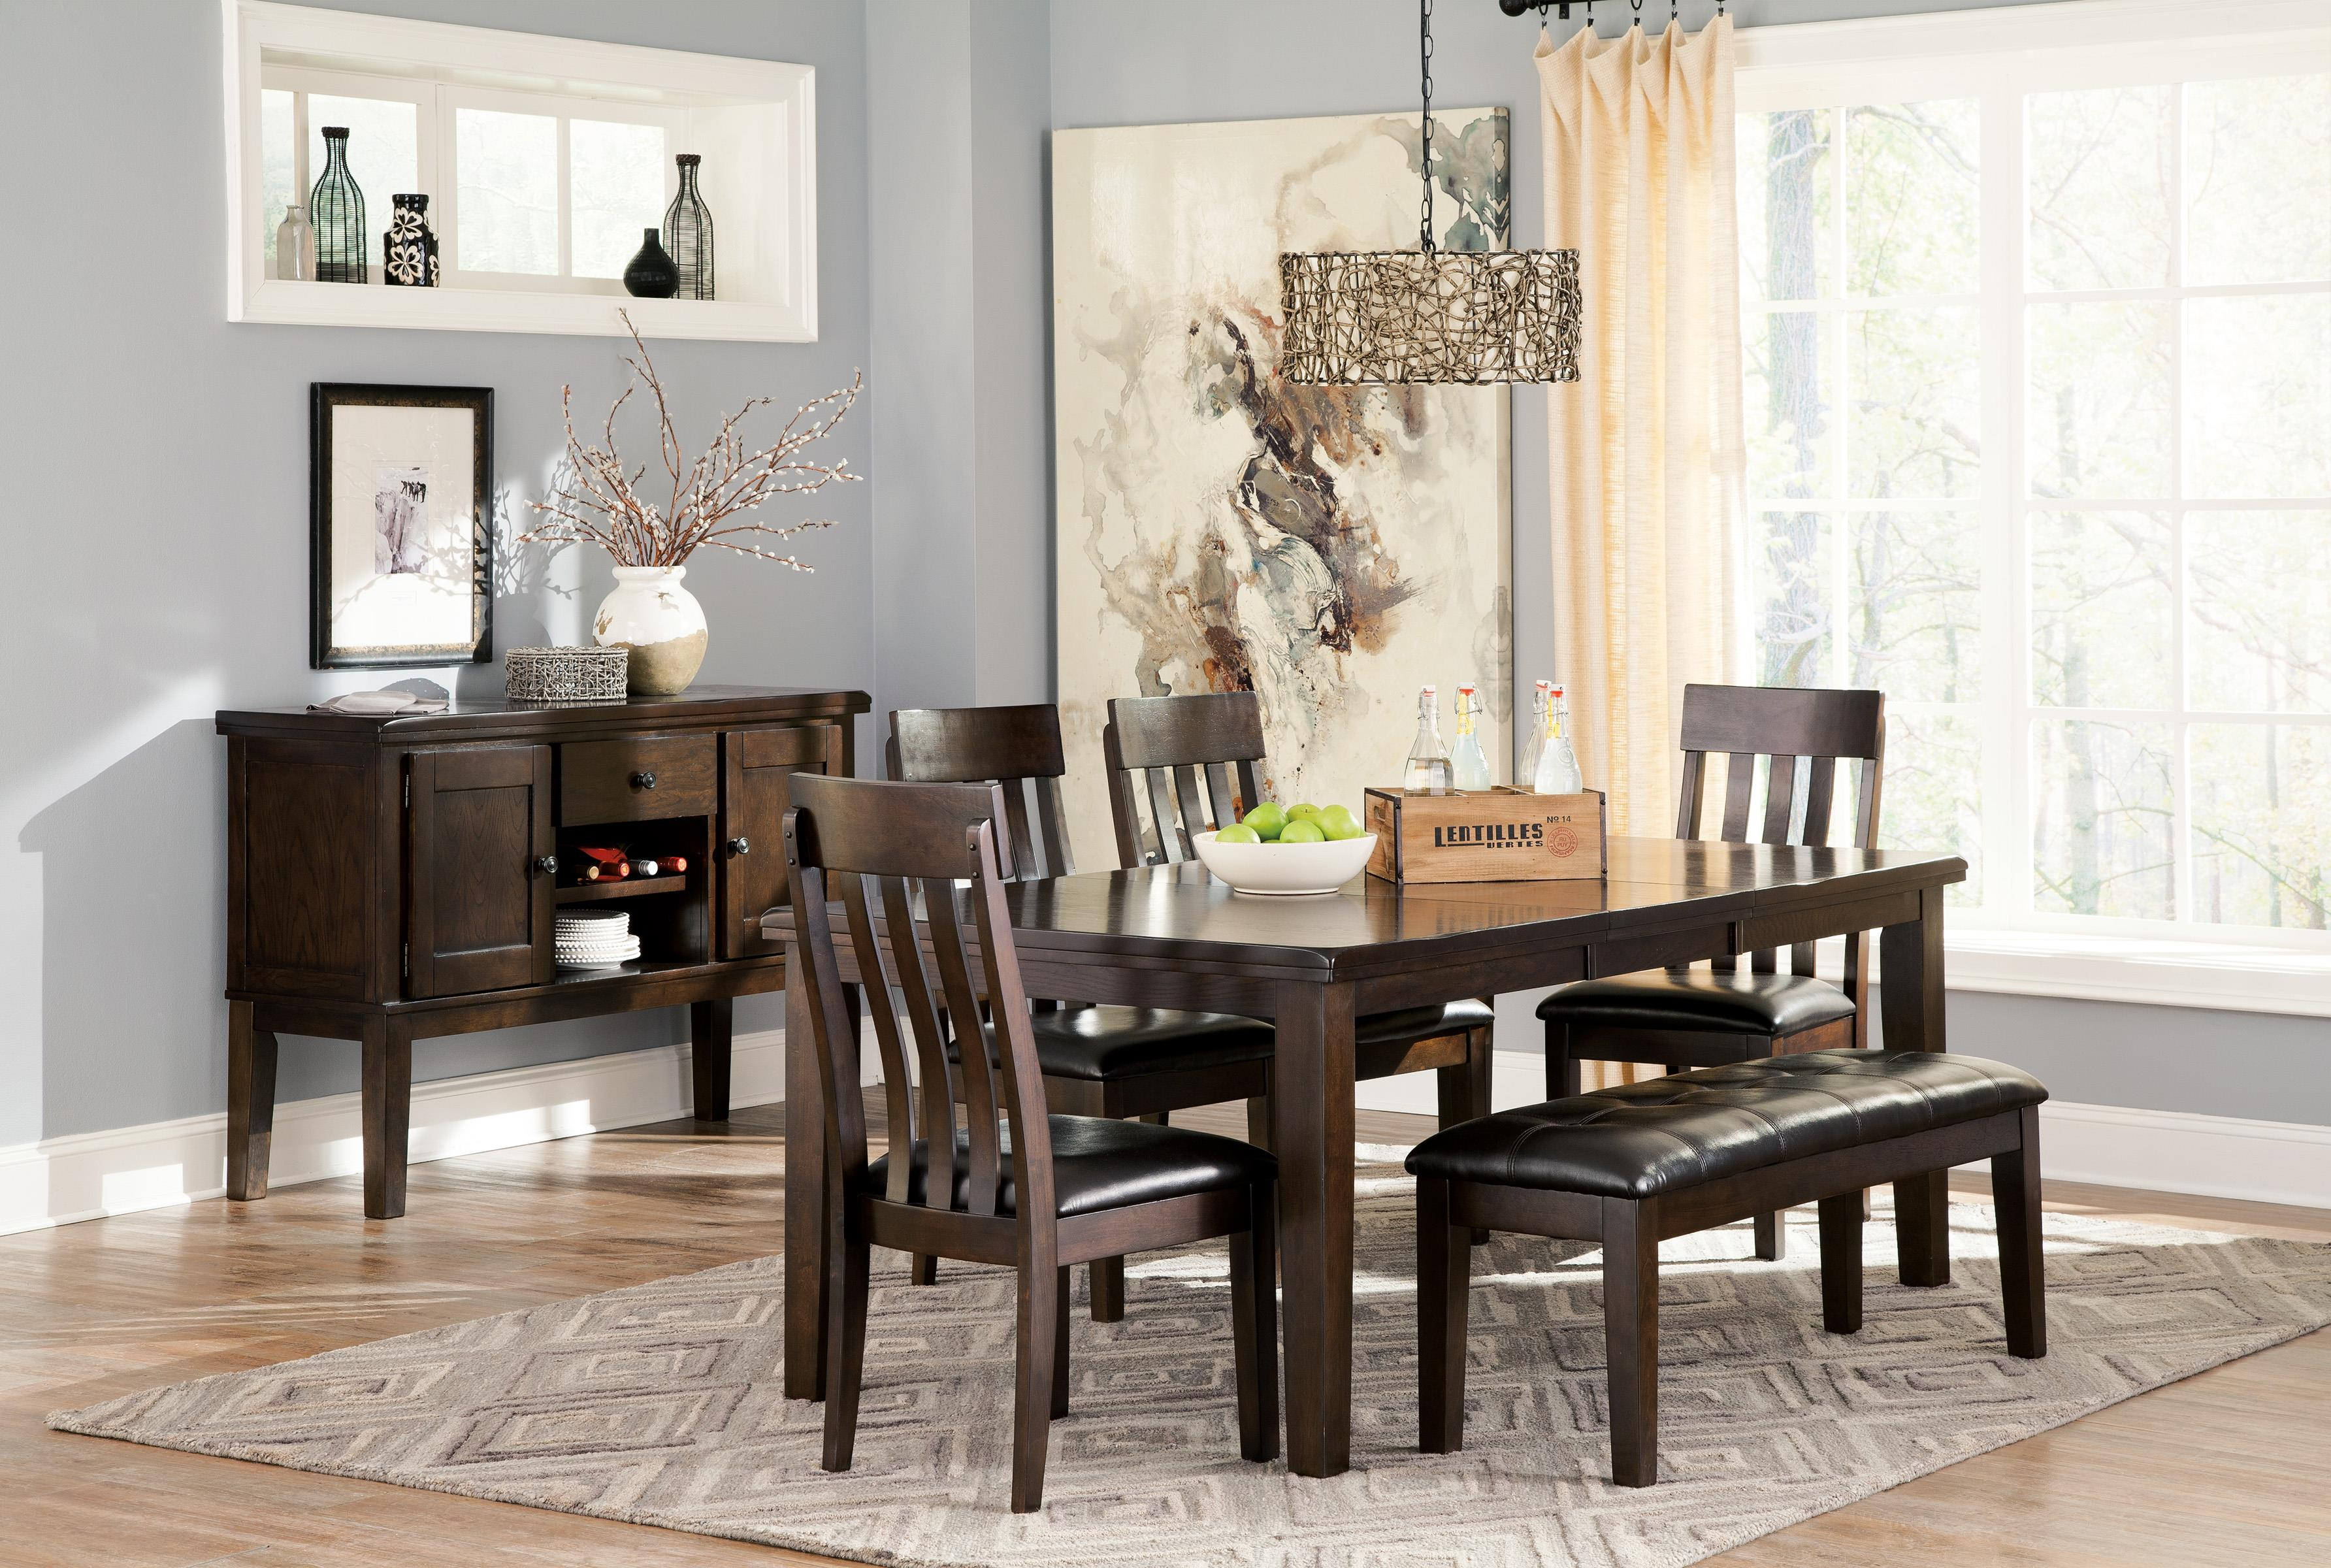 Rectangular Dining Room Table W/ Butterfly Leaf By